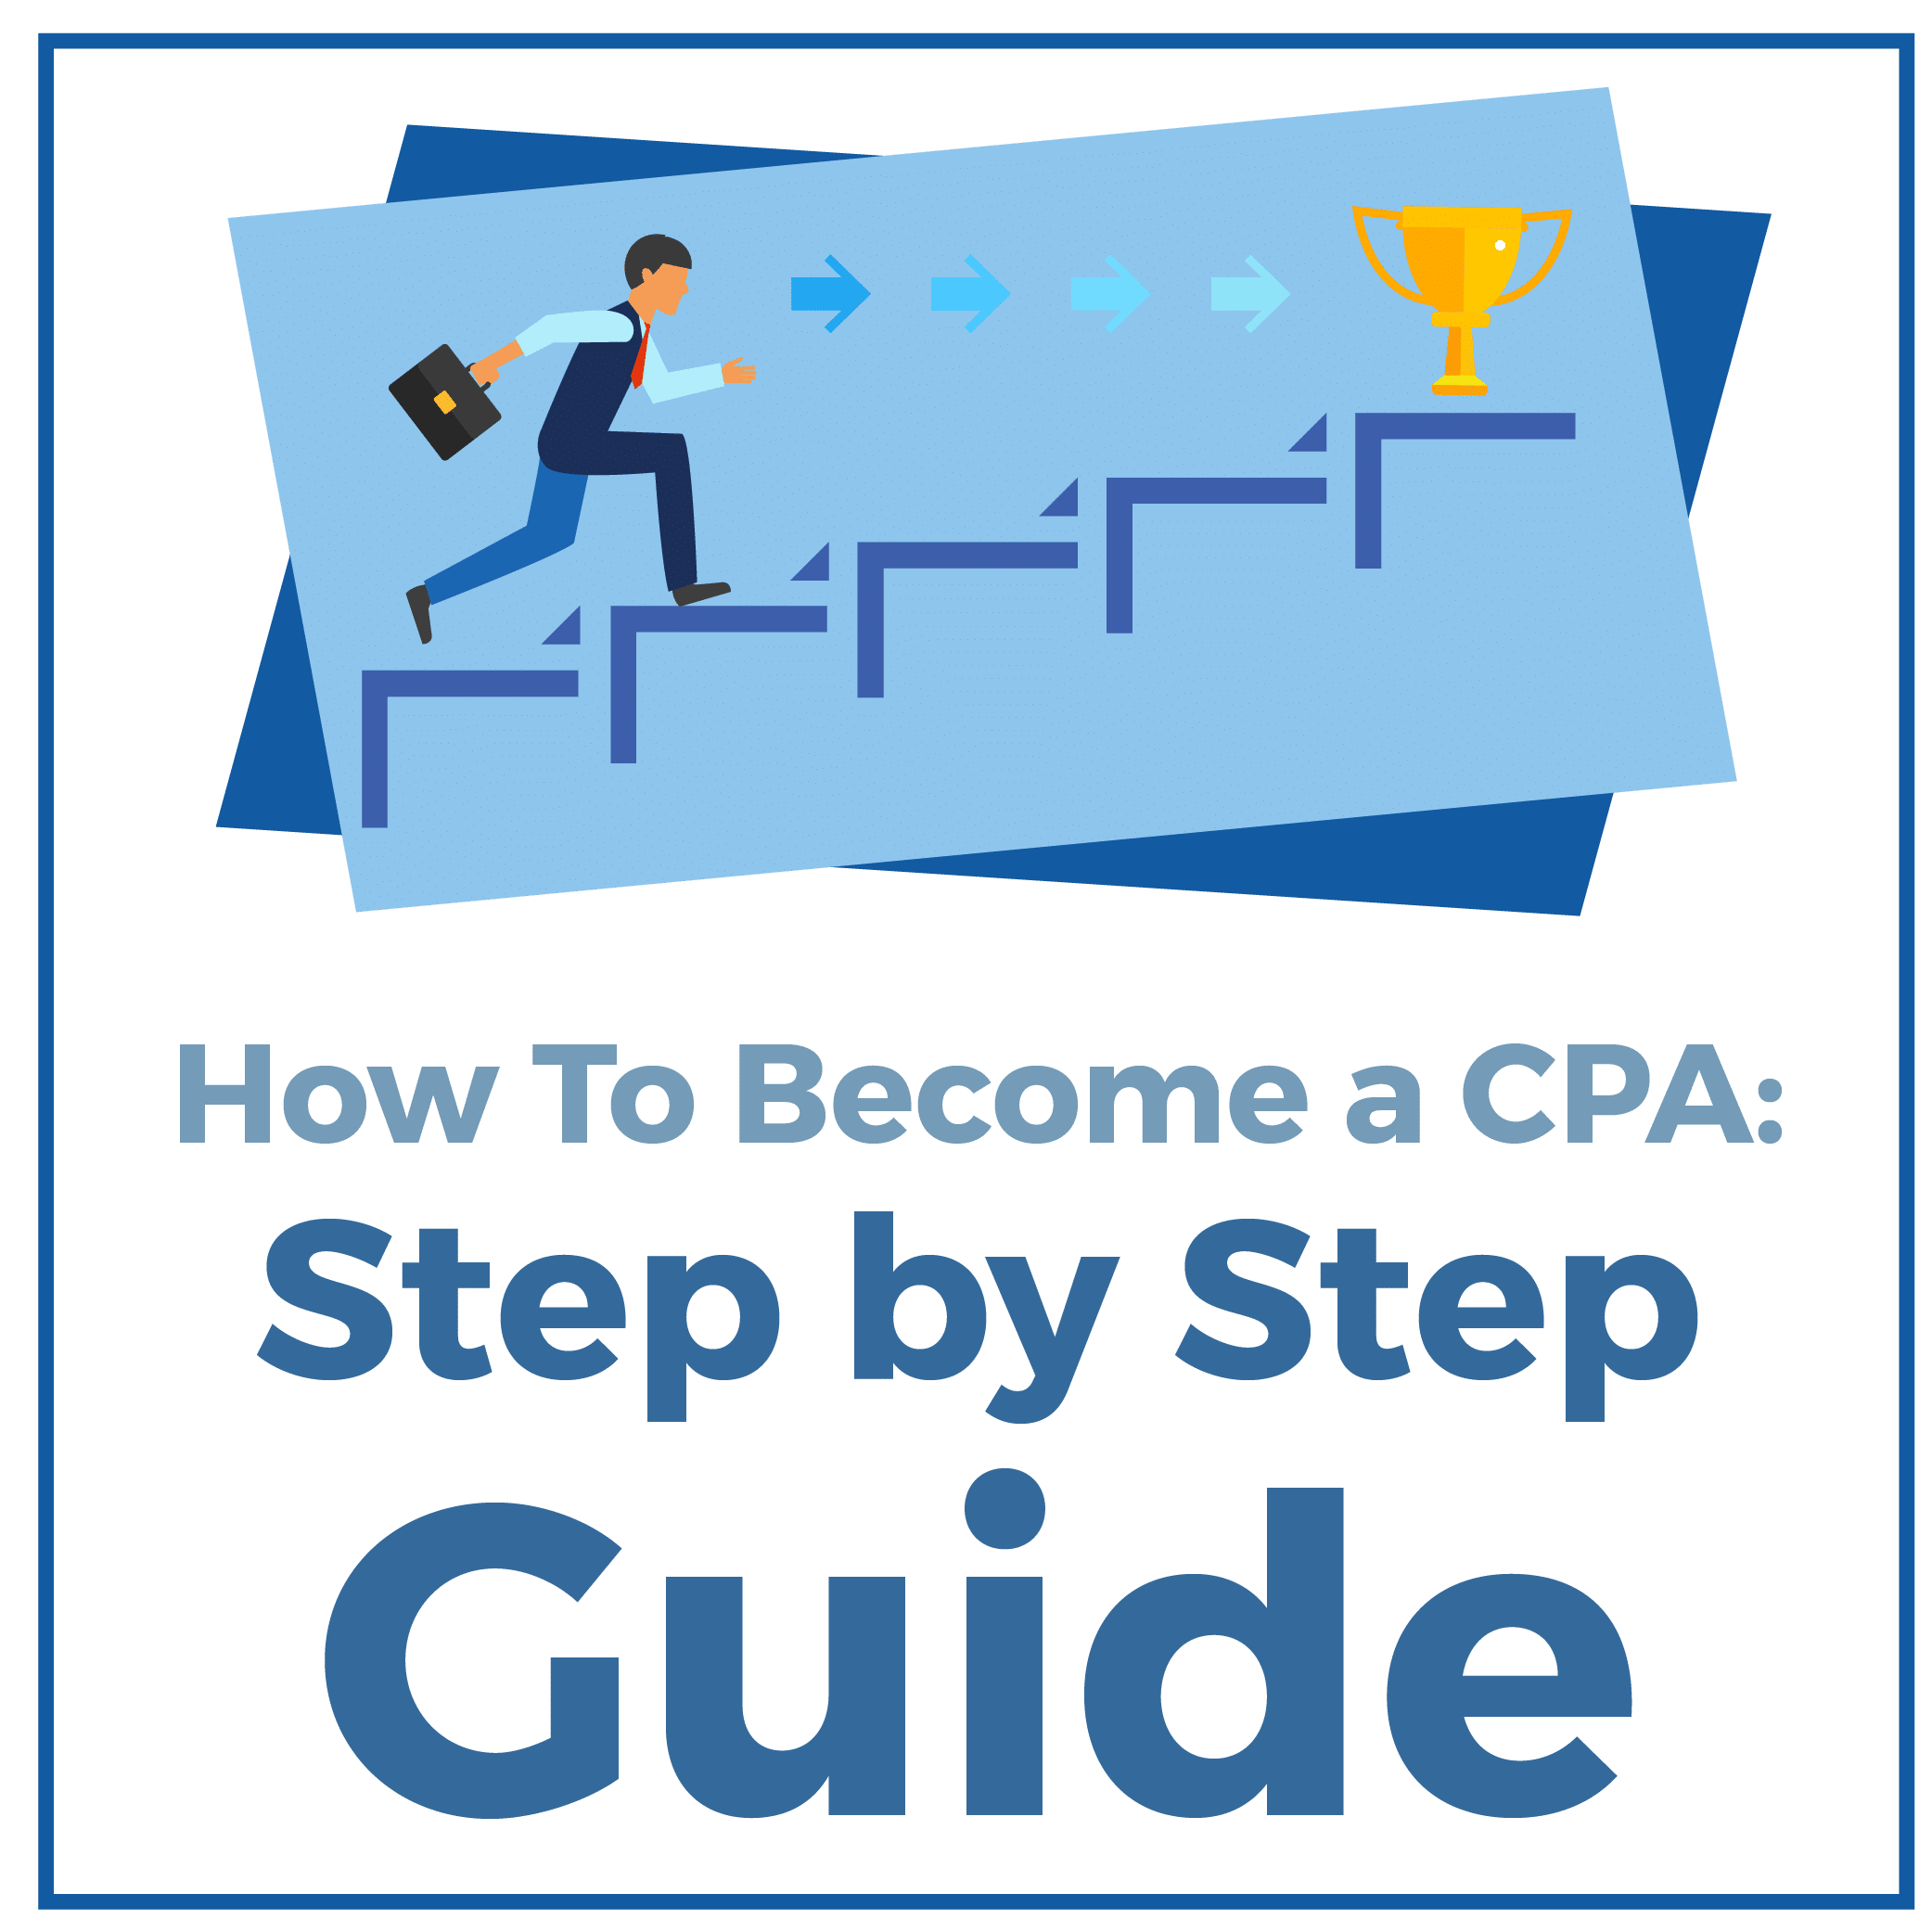 How to Become a CPA: Step-by-Step Guide